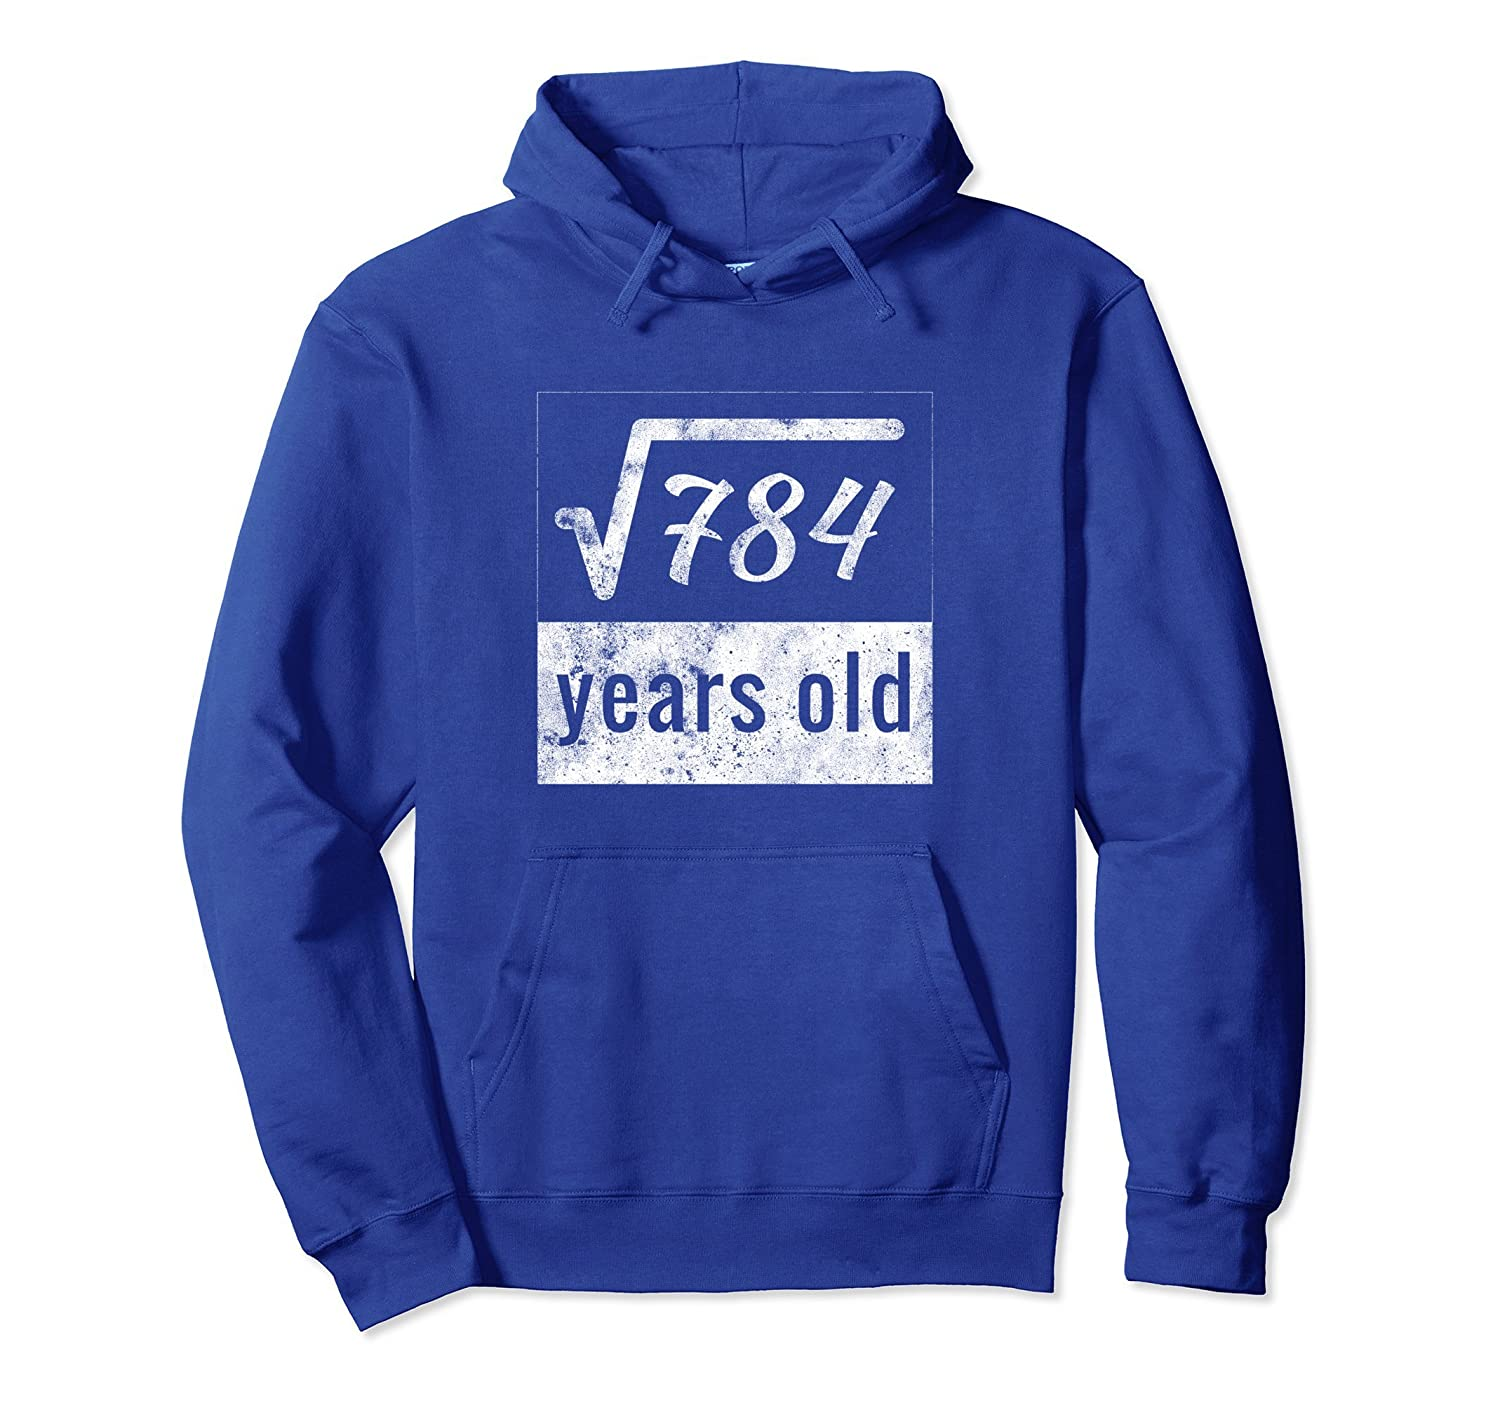 28th Birthday Gift Hoodie Square Root of 784 28 Years Old-azvn